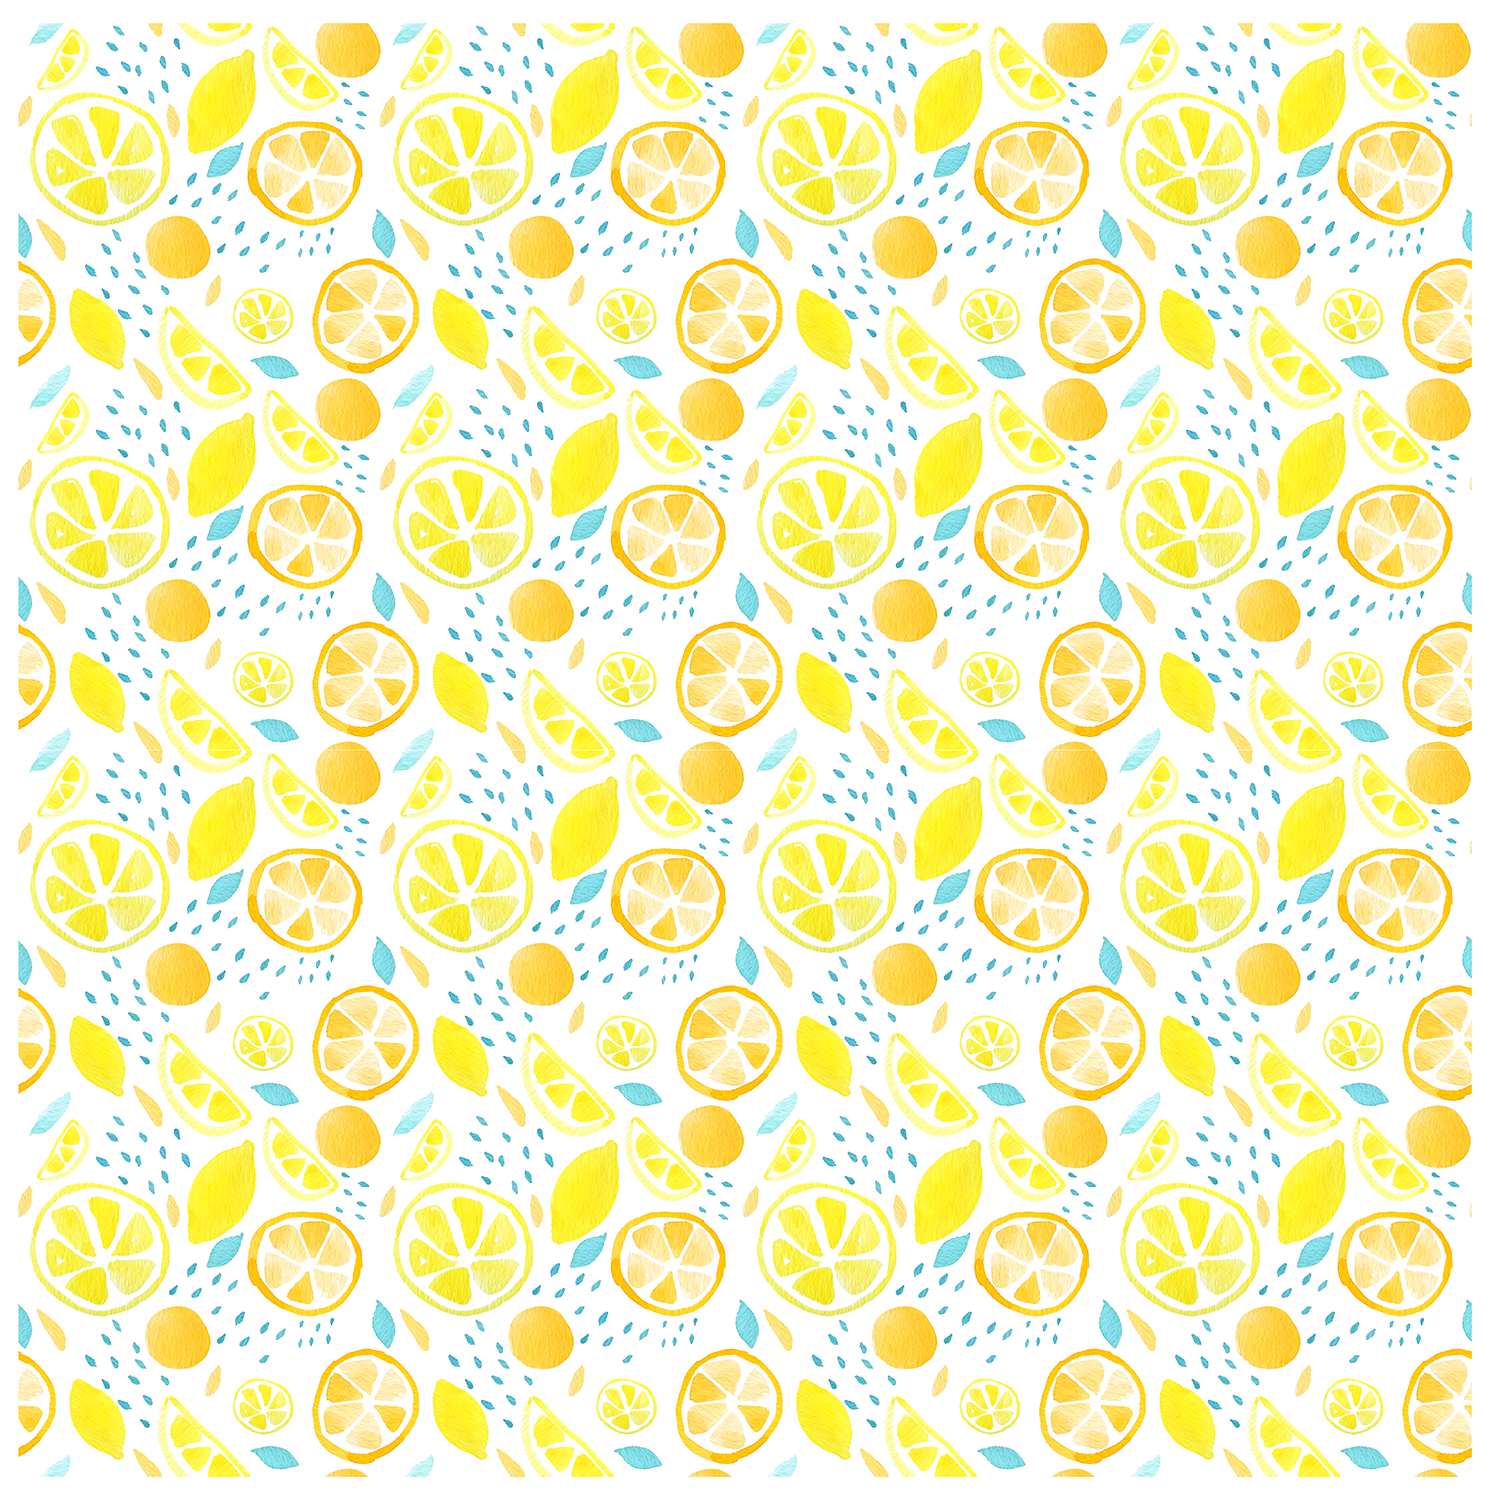 fruits-seamless-pattern-1500px.png